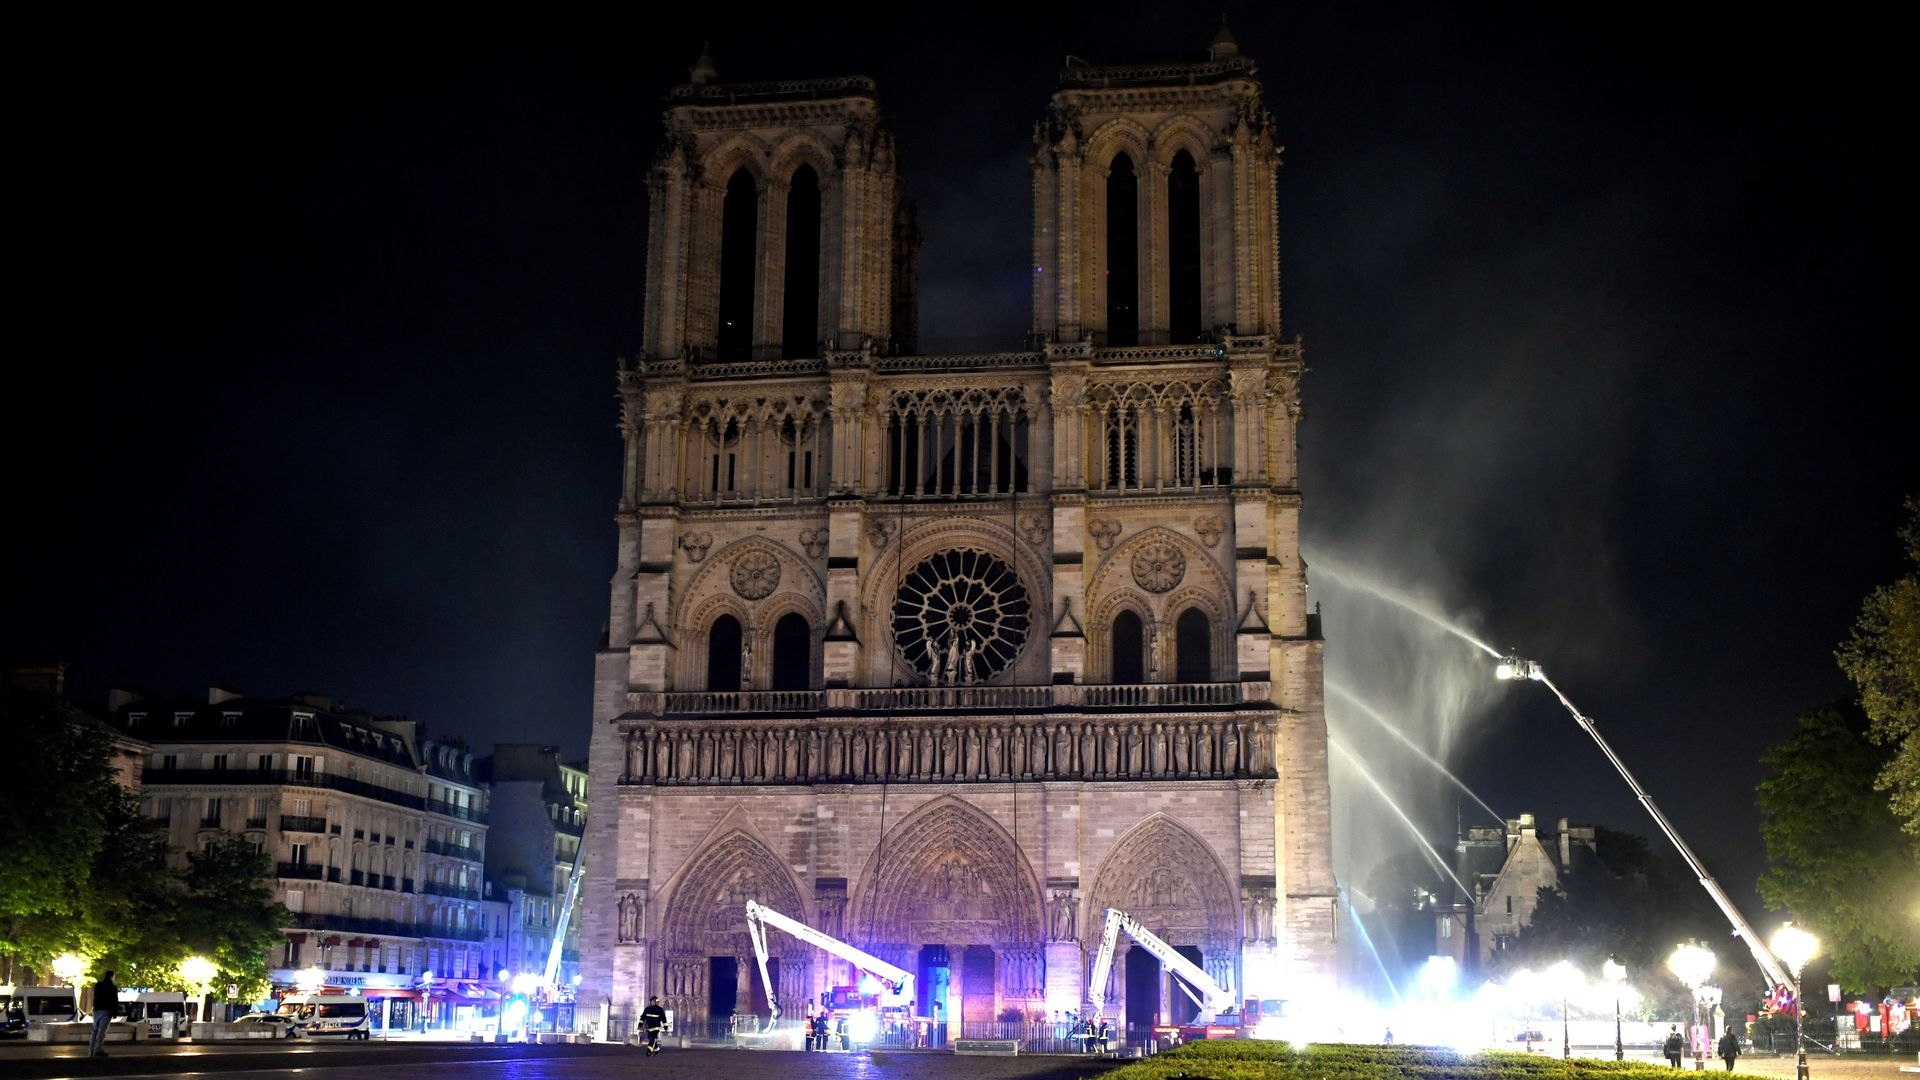 Firefighters douse flames at Notre Dame Cathedral in Paris.